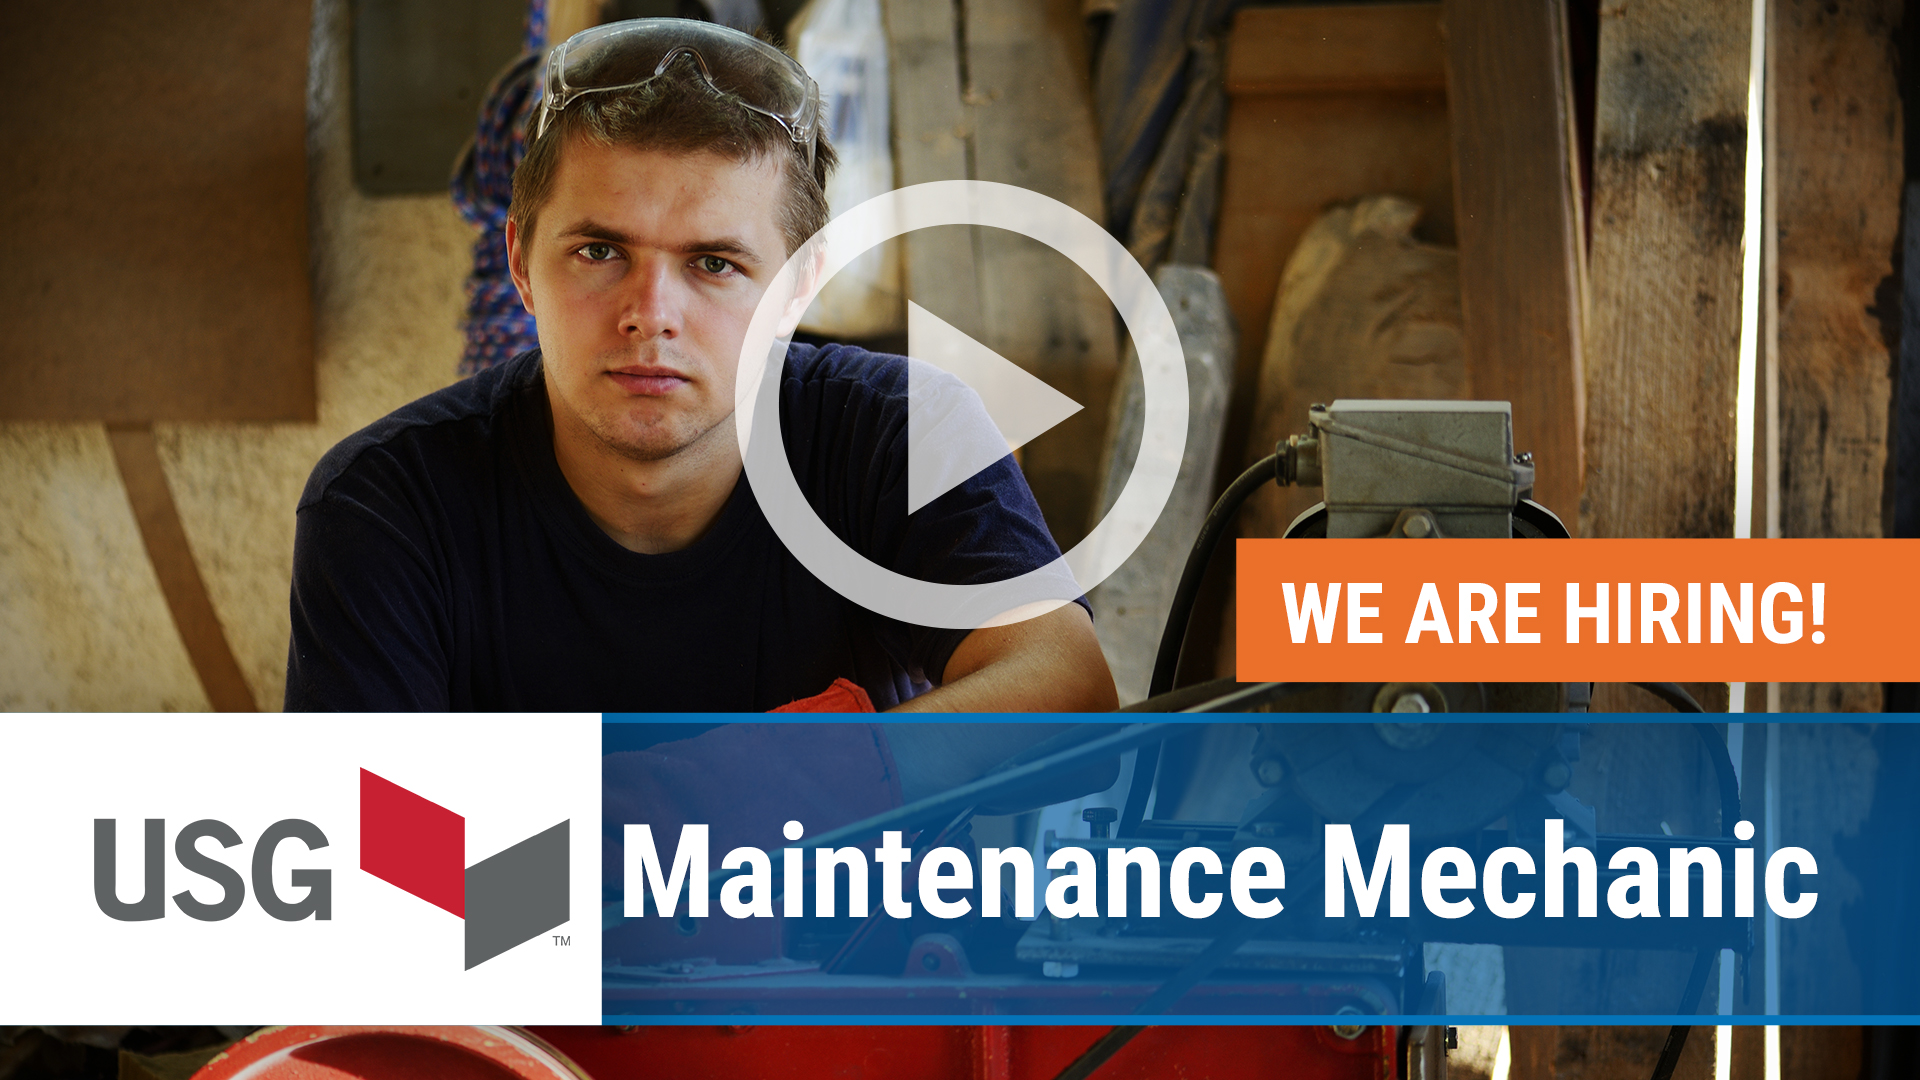 Watch our careers video for available job opening Maintenance Mechanic in Weirton, VA